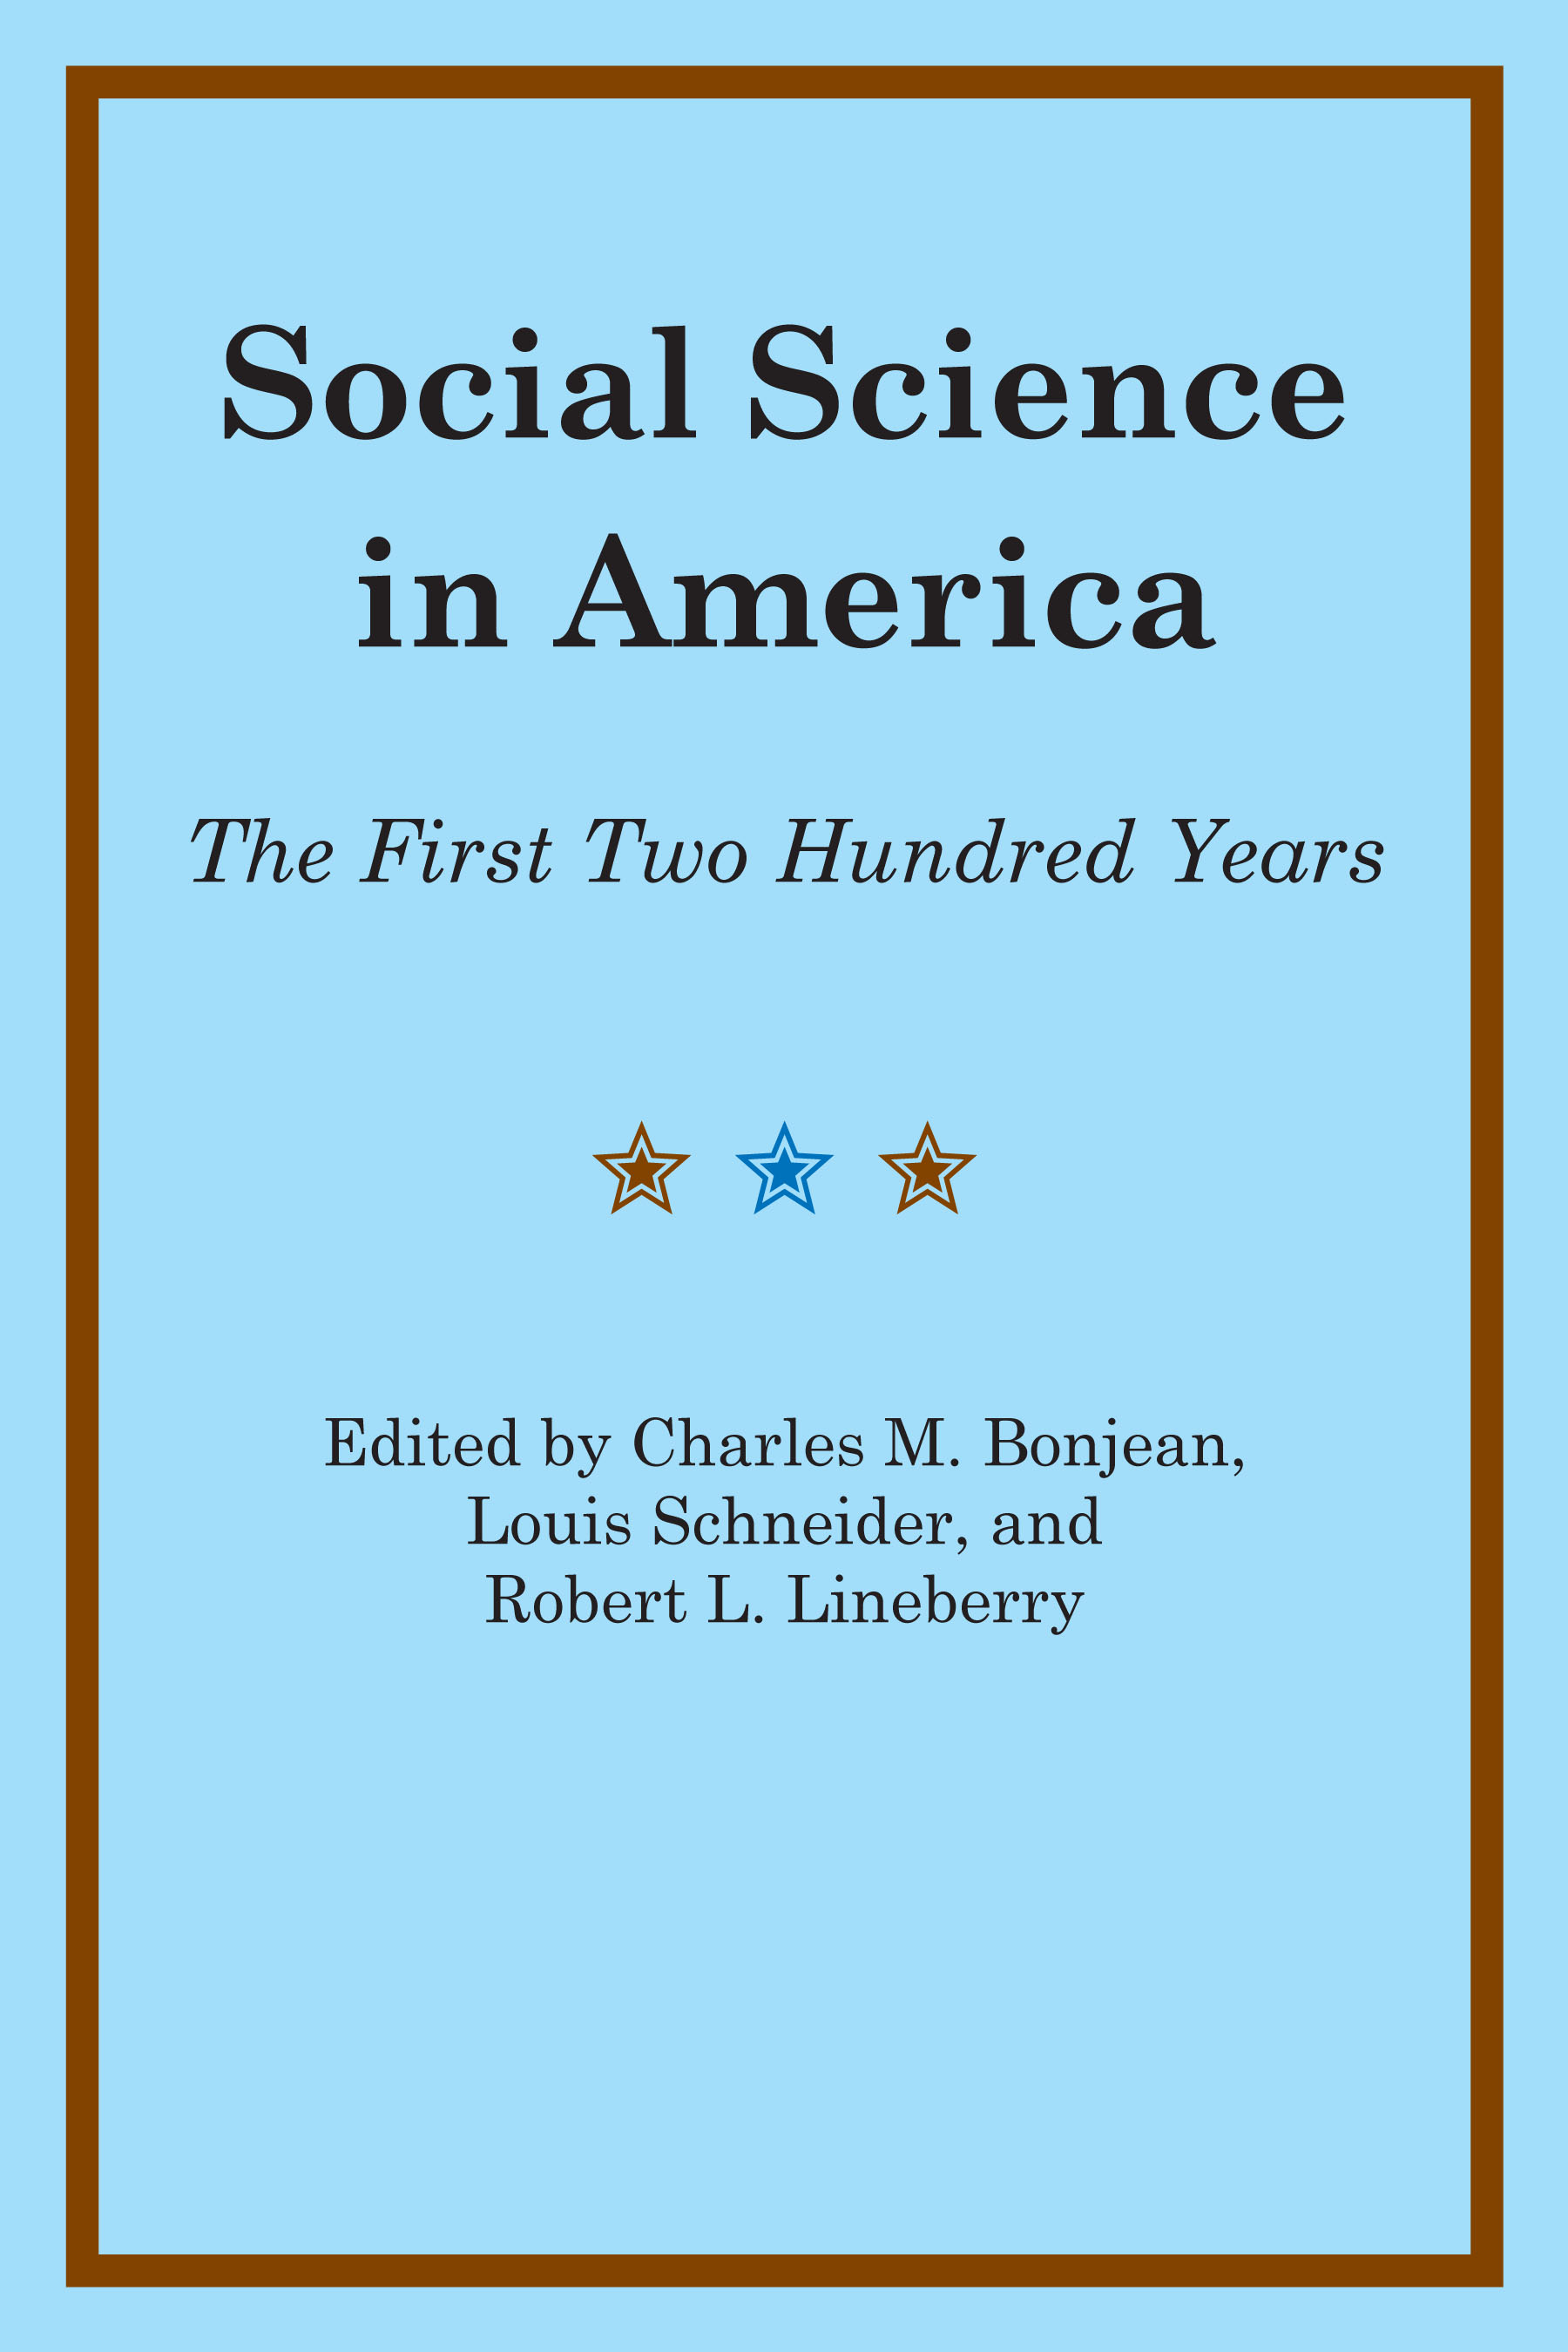 Cover of Social Science in America